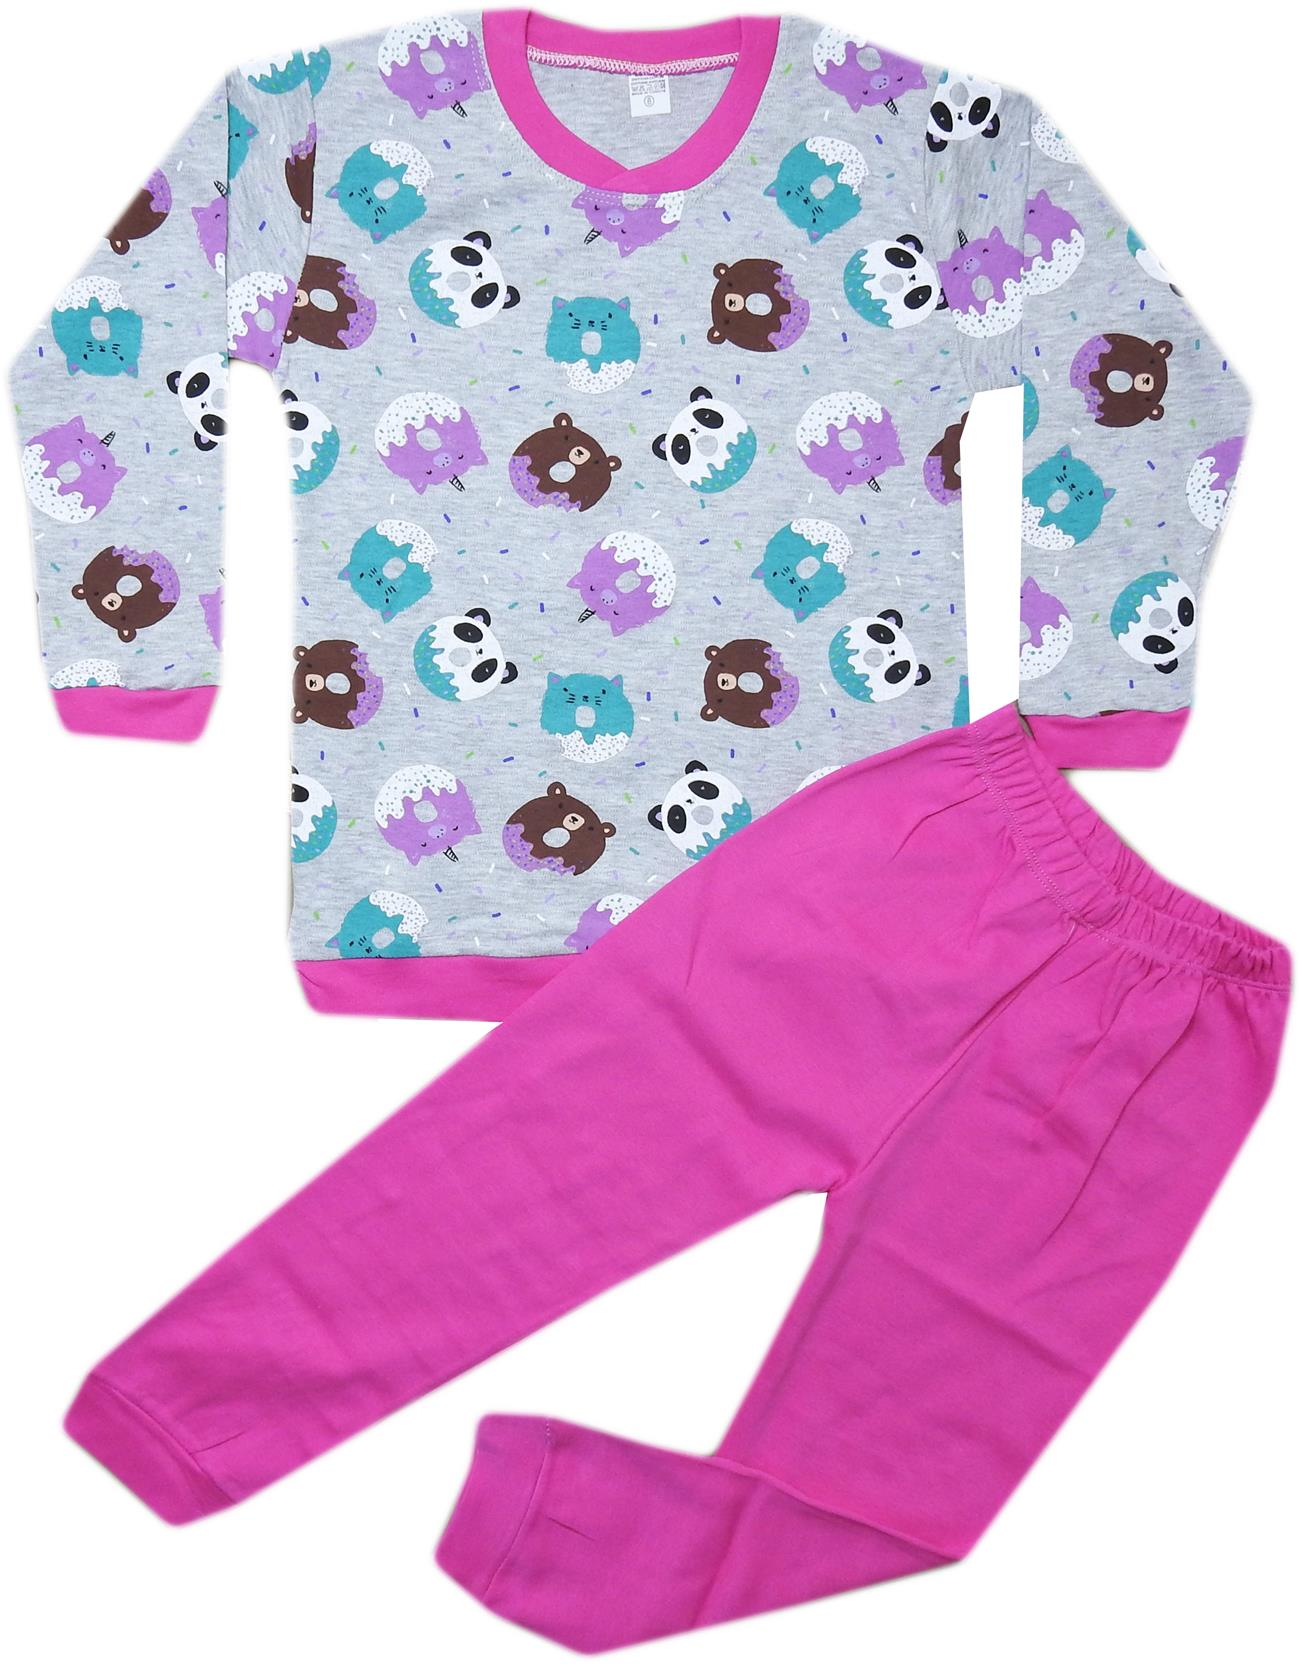 wholesale baby pajamas for boys and girls for 5-6-7-8 age